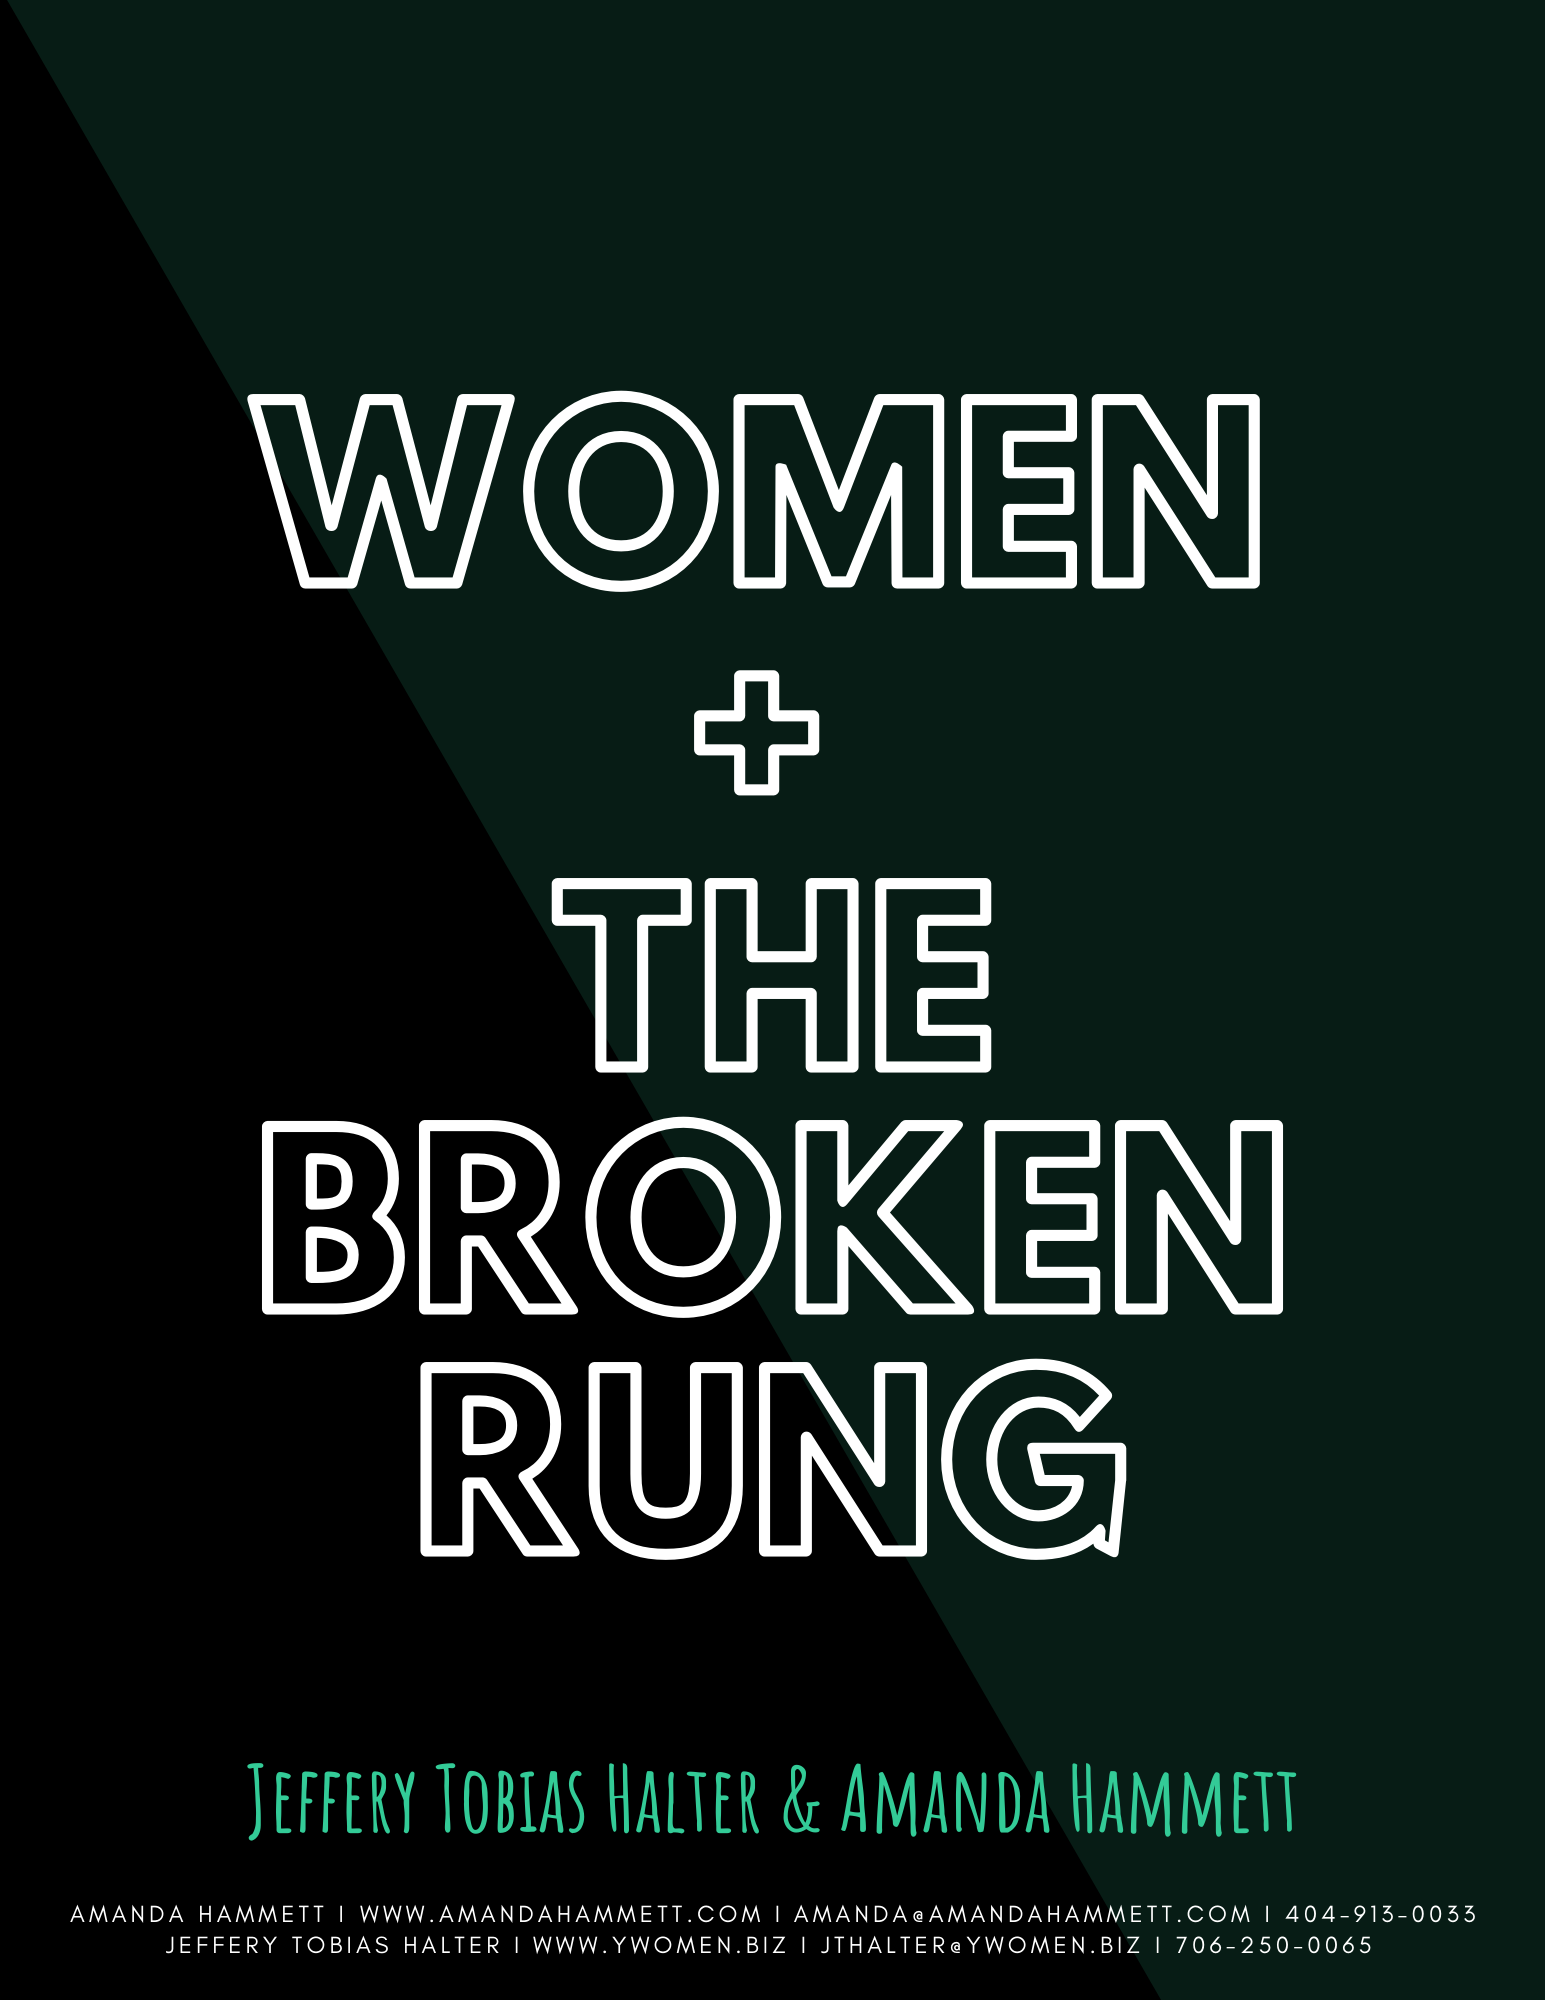 Download the Women + The Broken Rung Whitepaper